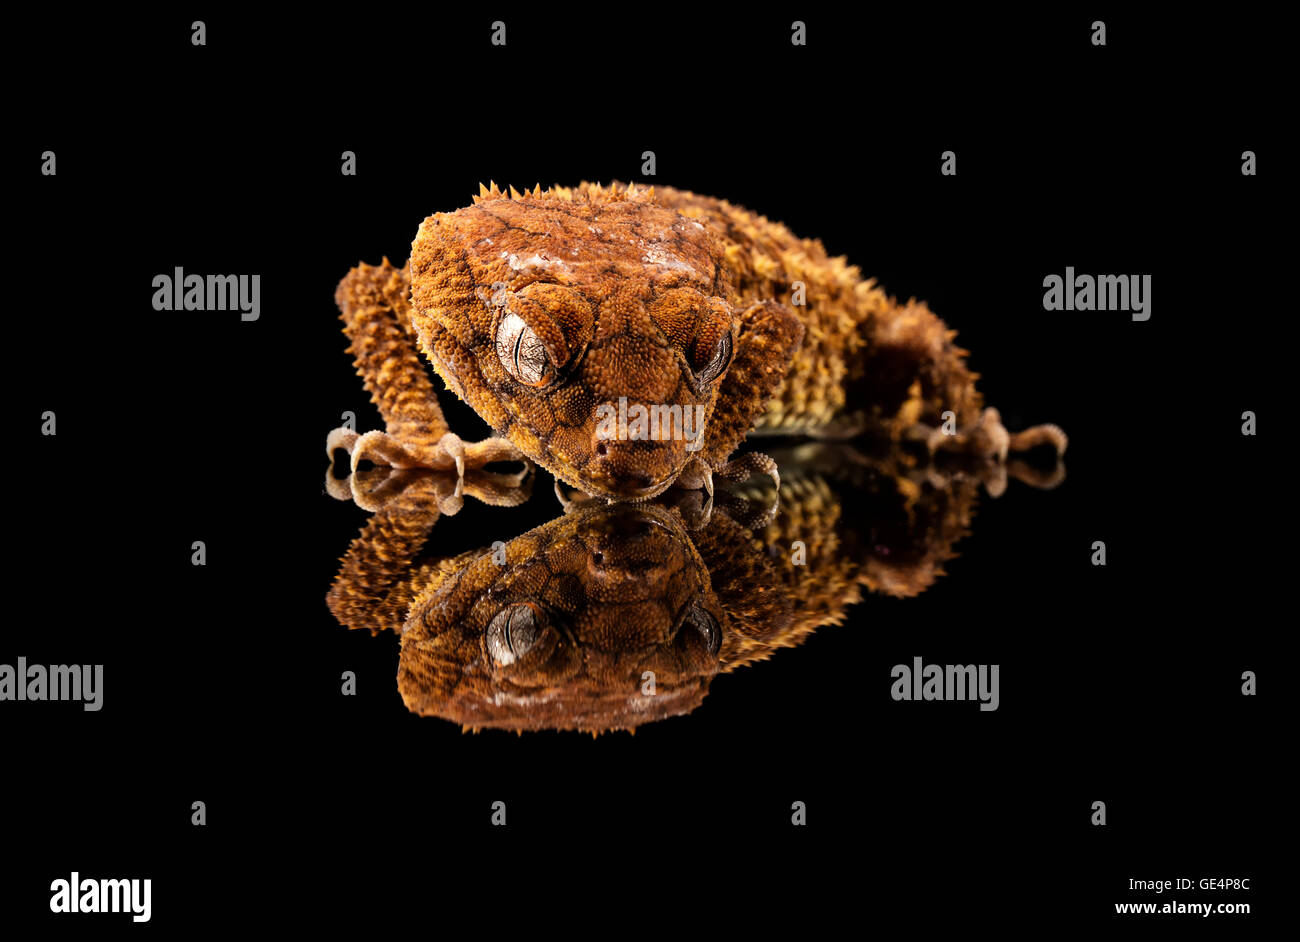 Rough Knob Tailed Gecko (Nephrurus amyae) looking at its reflection - Stock Image